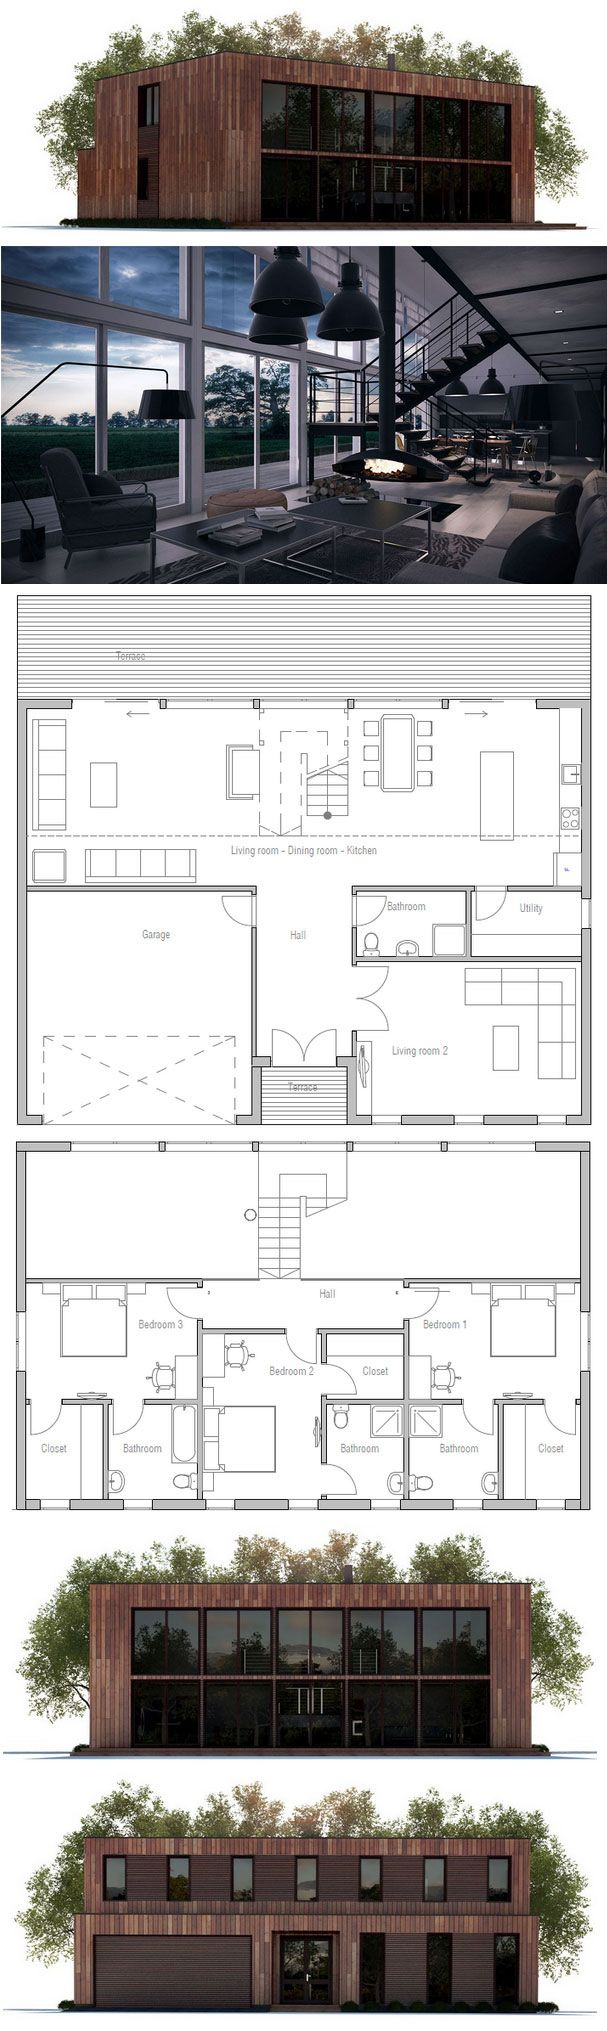 Plan de maison architecte maison ragondin 160 m moderne for Plan architecte logiciel